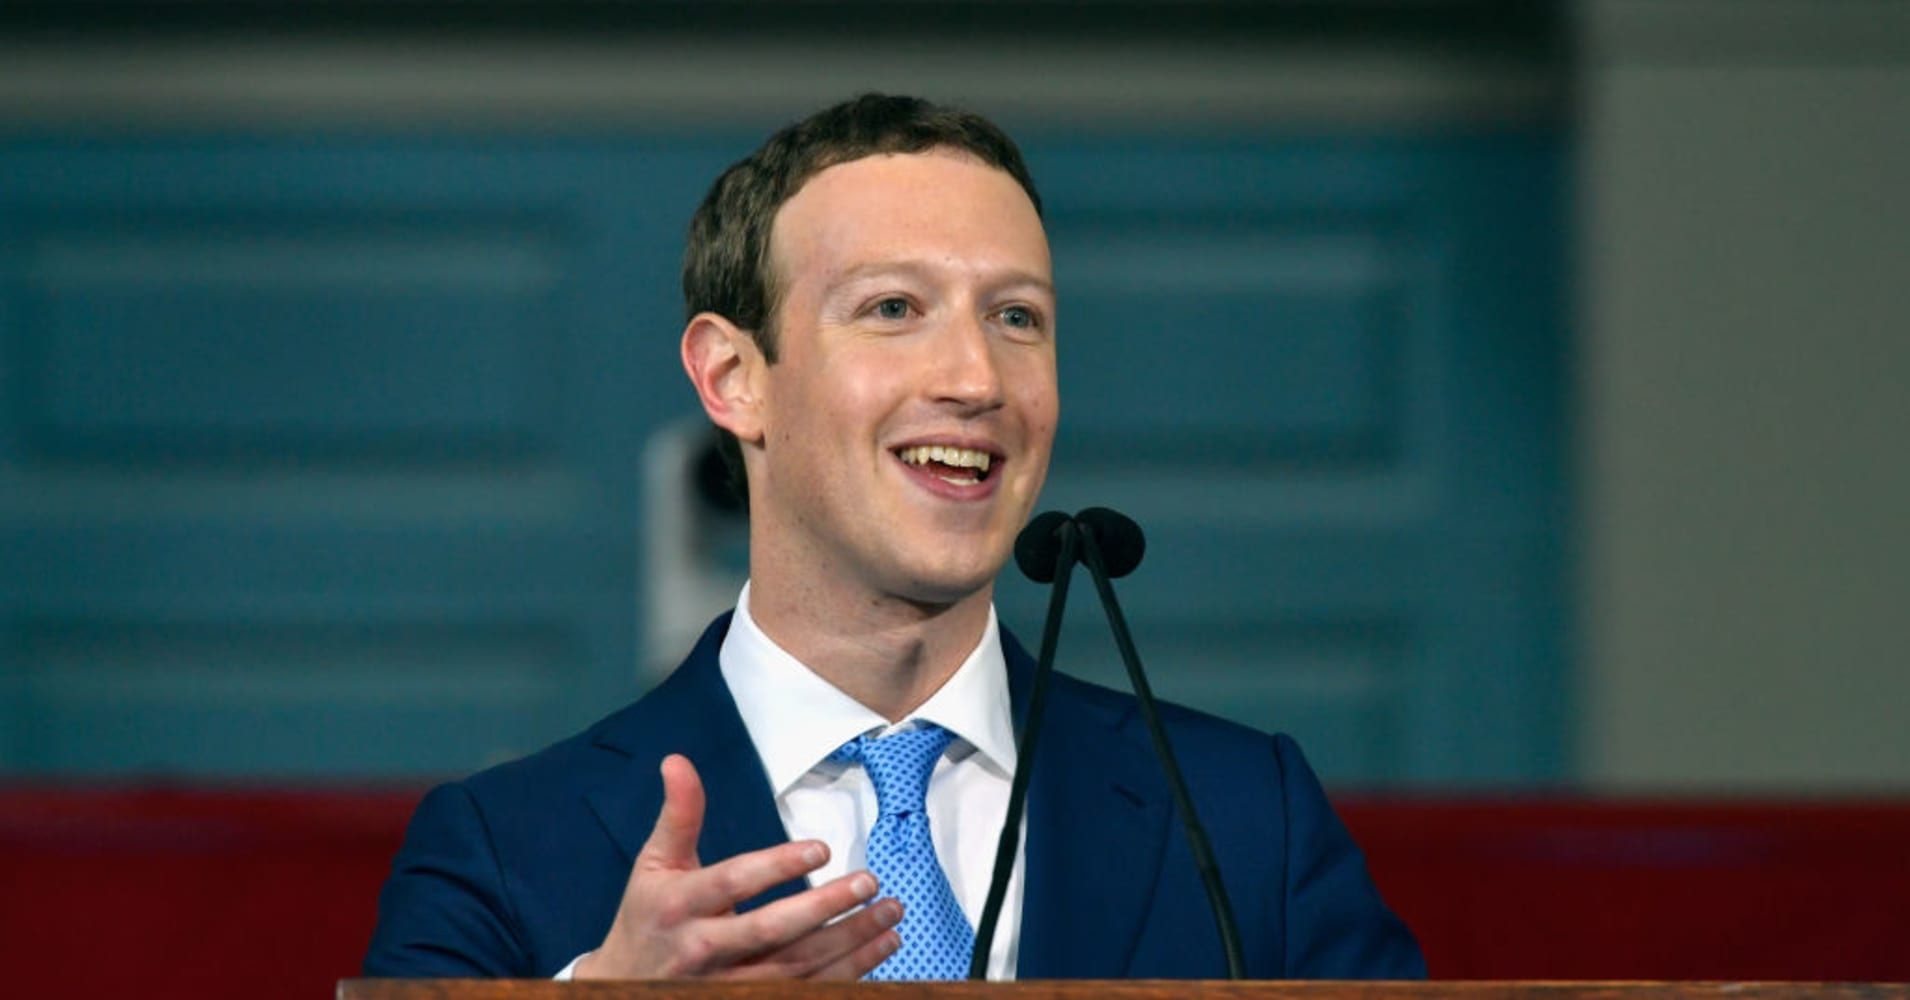 10 excerpts from Facebook CEO Zuckerberg's Harvard speech